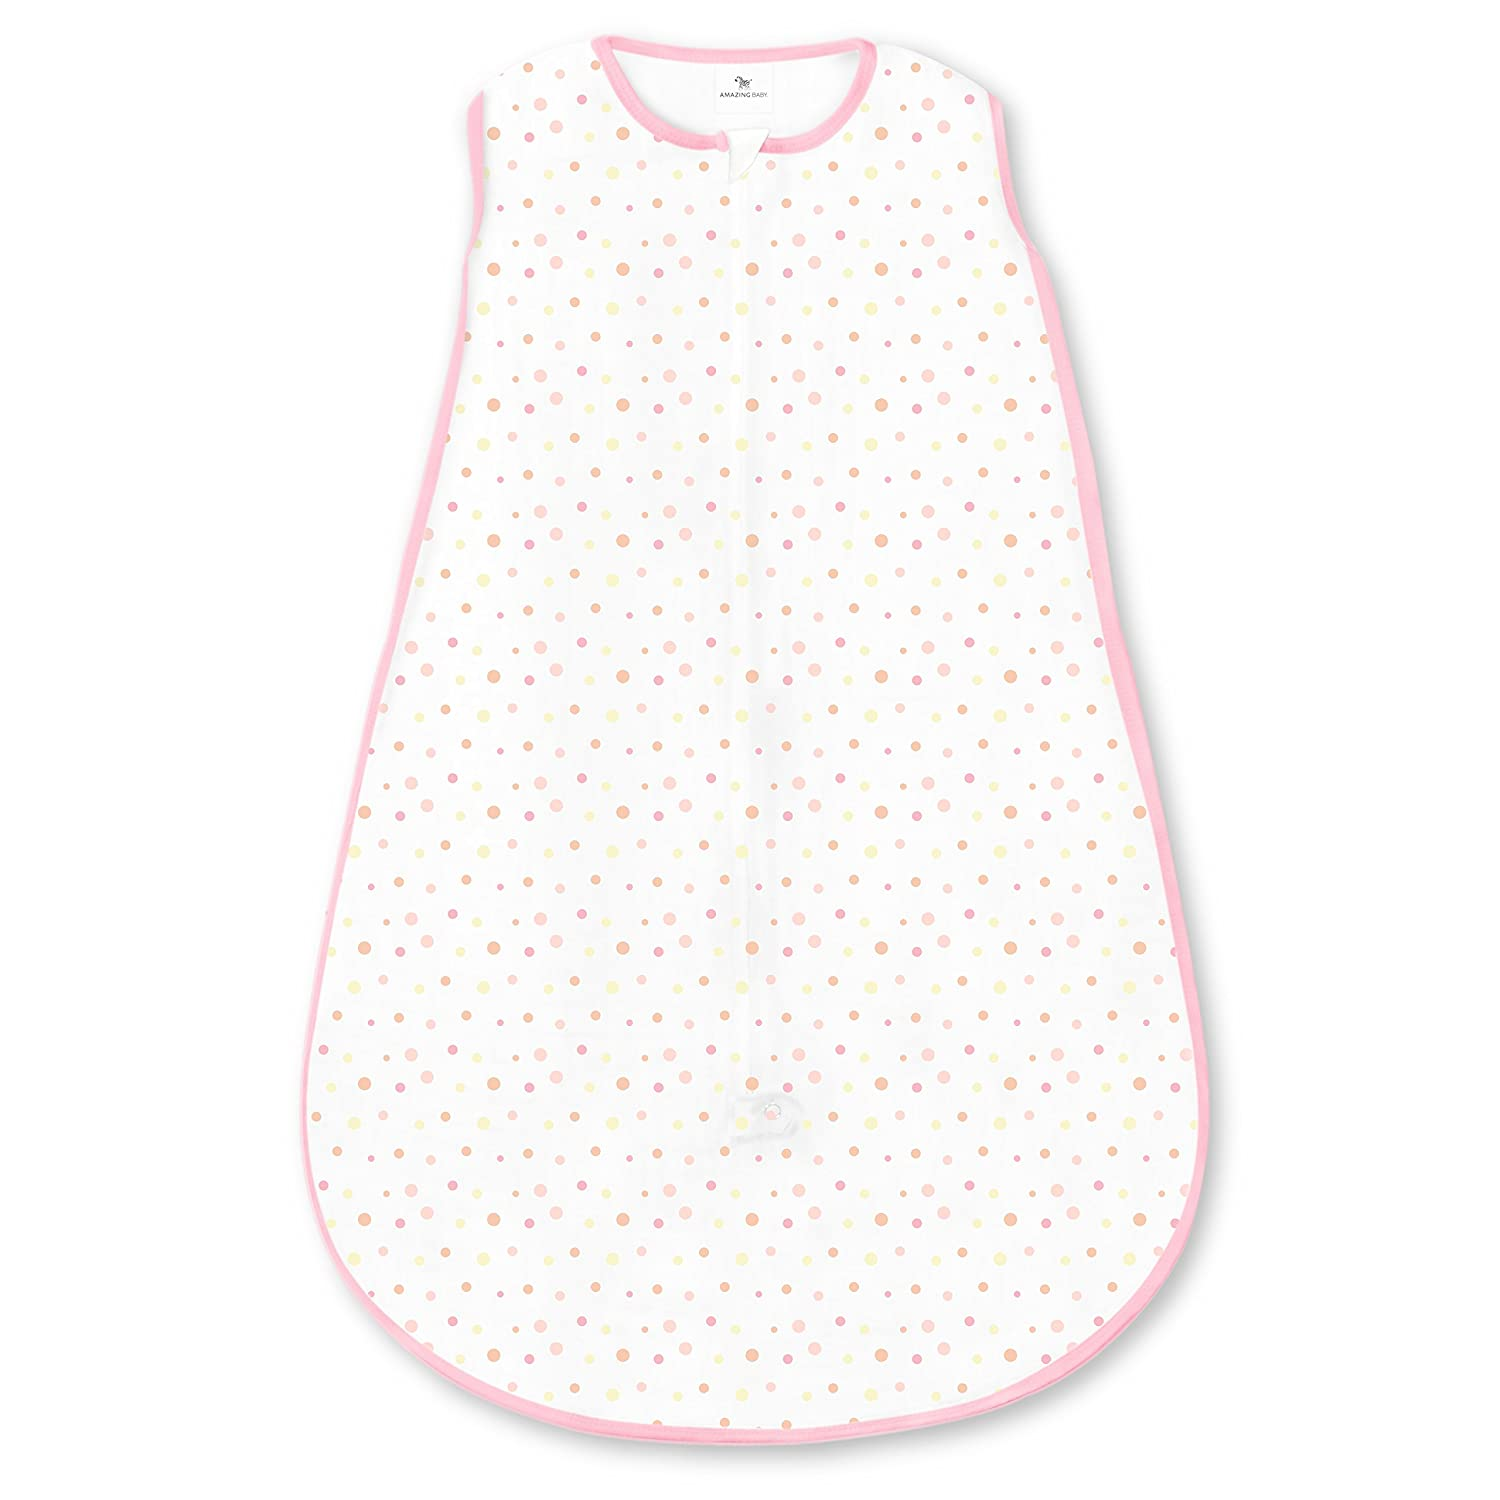 Amazing Baby Microfleece Sleeping Sack with 2-Way Zipper, Playful Dots, SeaCrystal, Small SDA-1115SC-S